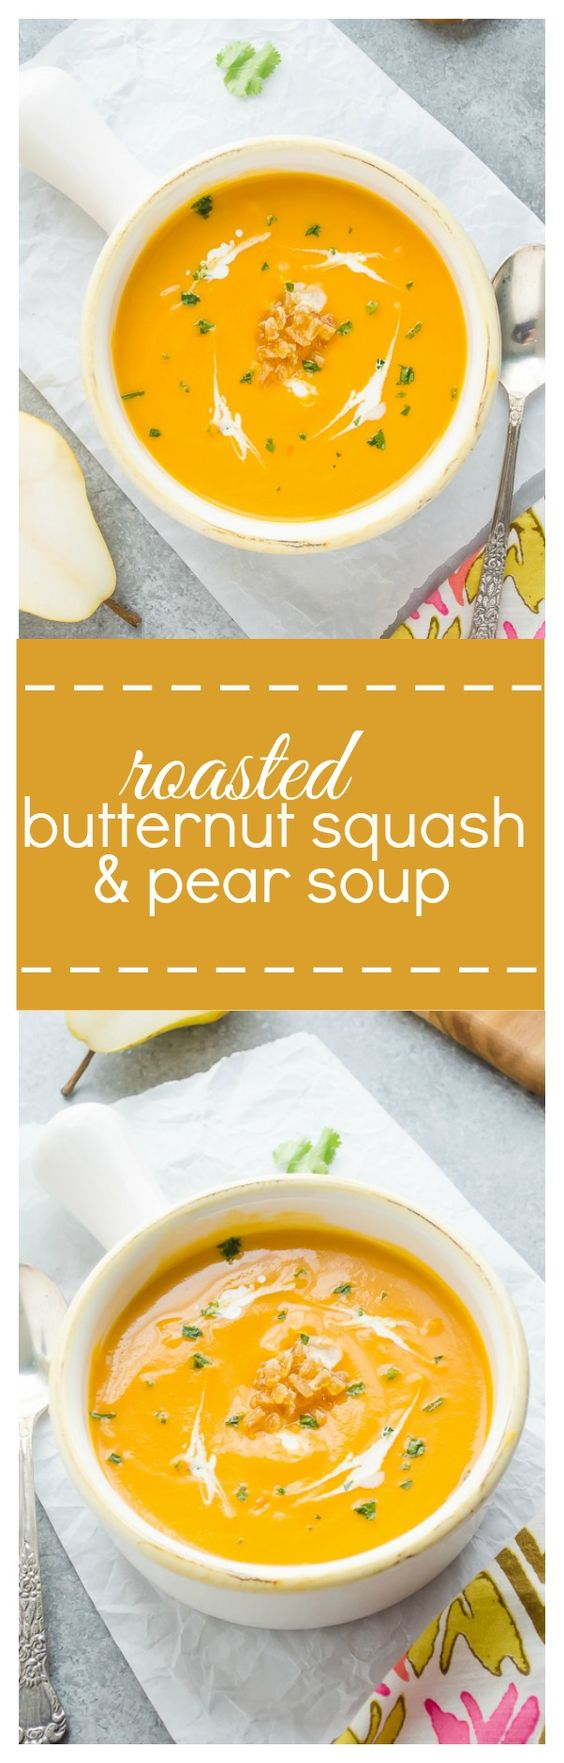 ... Butternut Squash and Pear Soup | Recipe | Smooth, Sauces and Soups